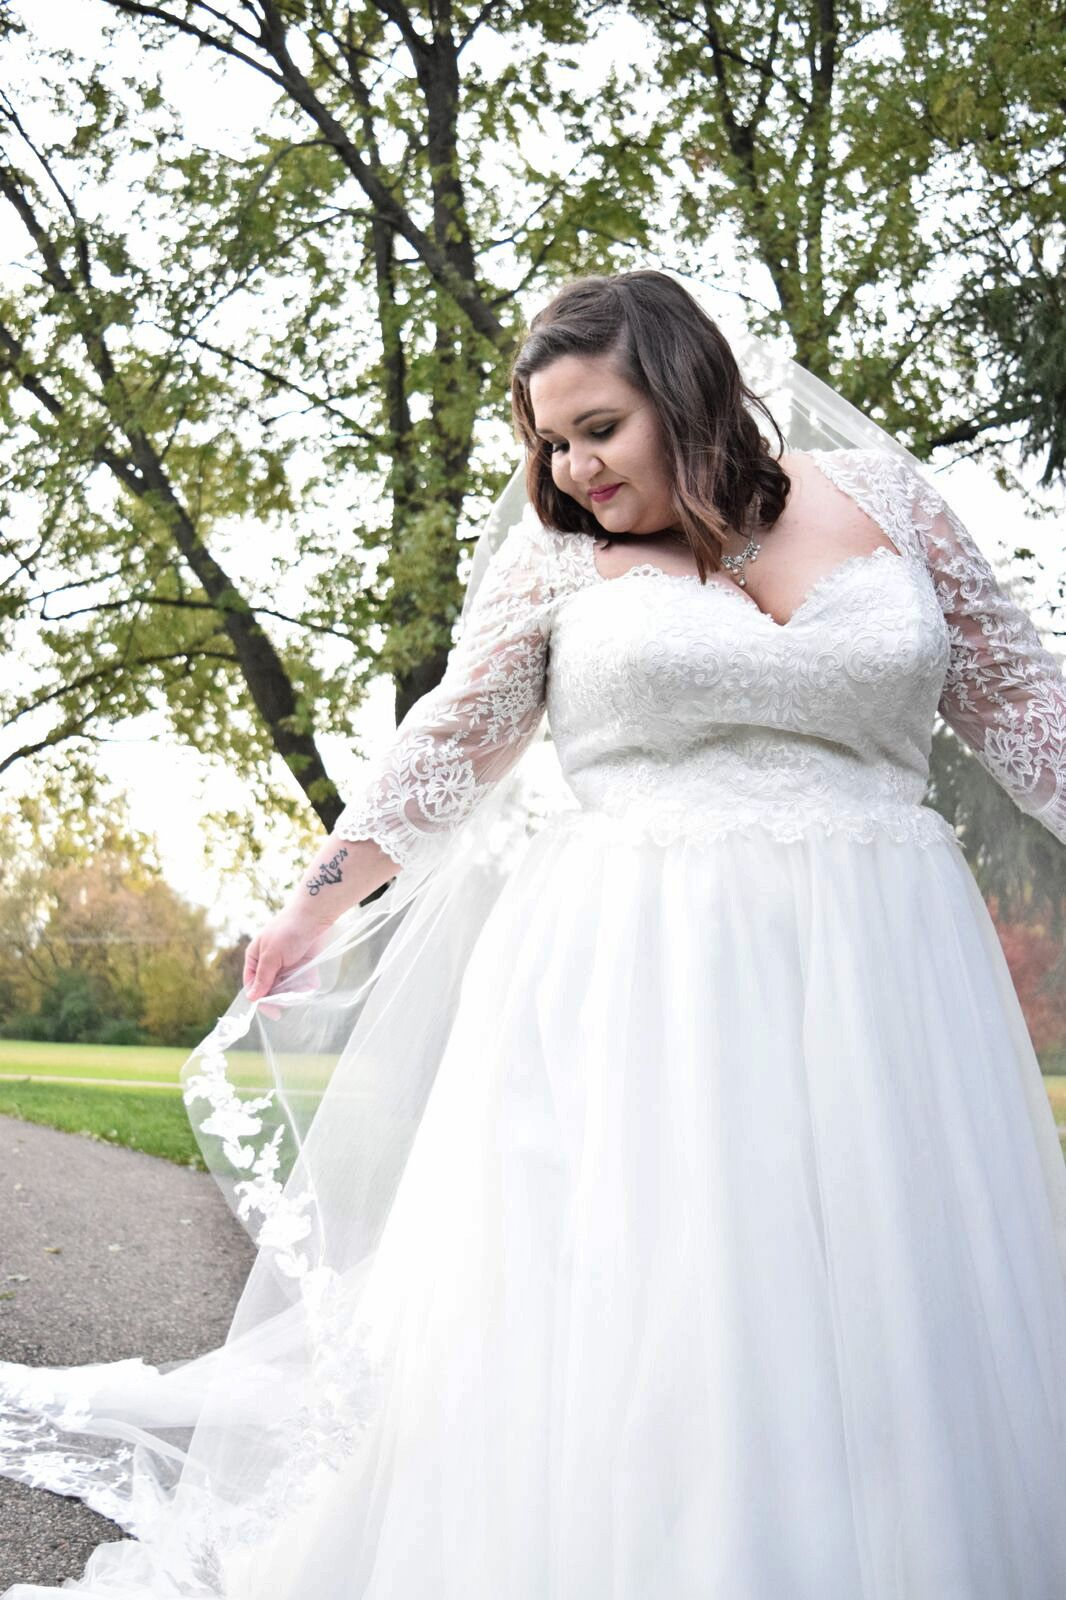 Plus Size Wedding Gown With Lace Sleeves Wedding Dresses Plus Size Wedding Gowns Plus Size Wedding